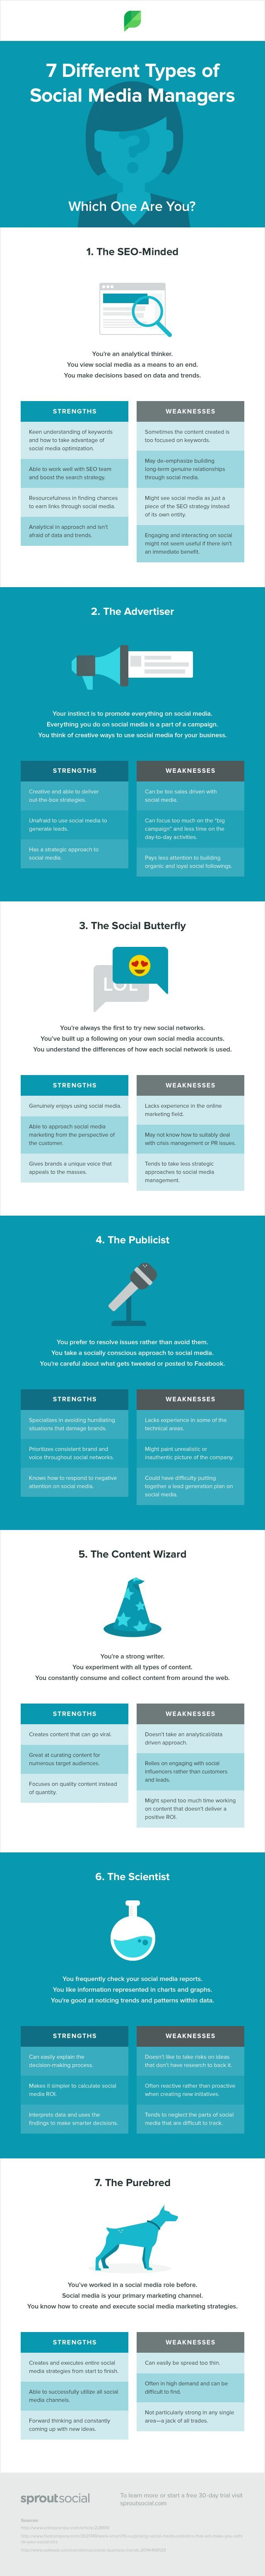 The 7 Different Types of Social Media Managers: Which One Are You?…